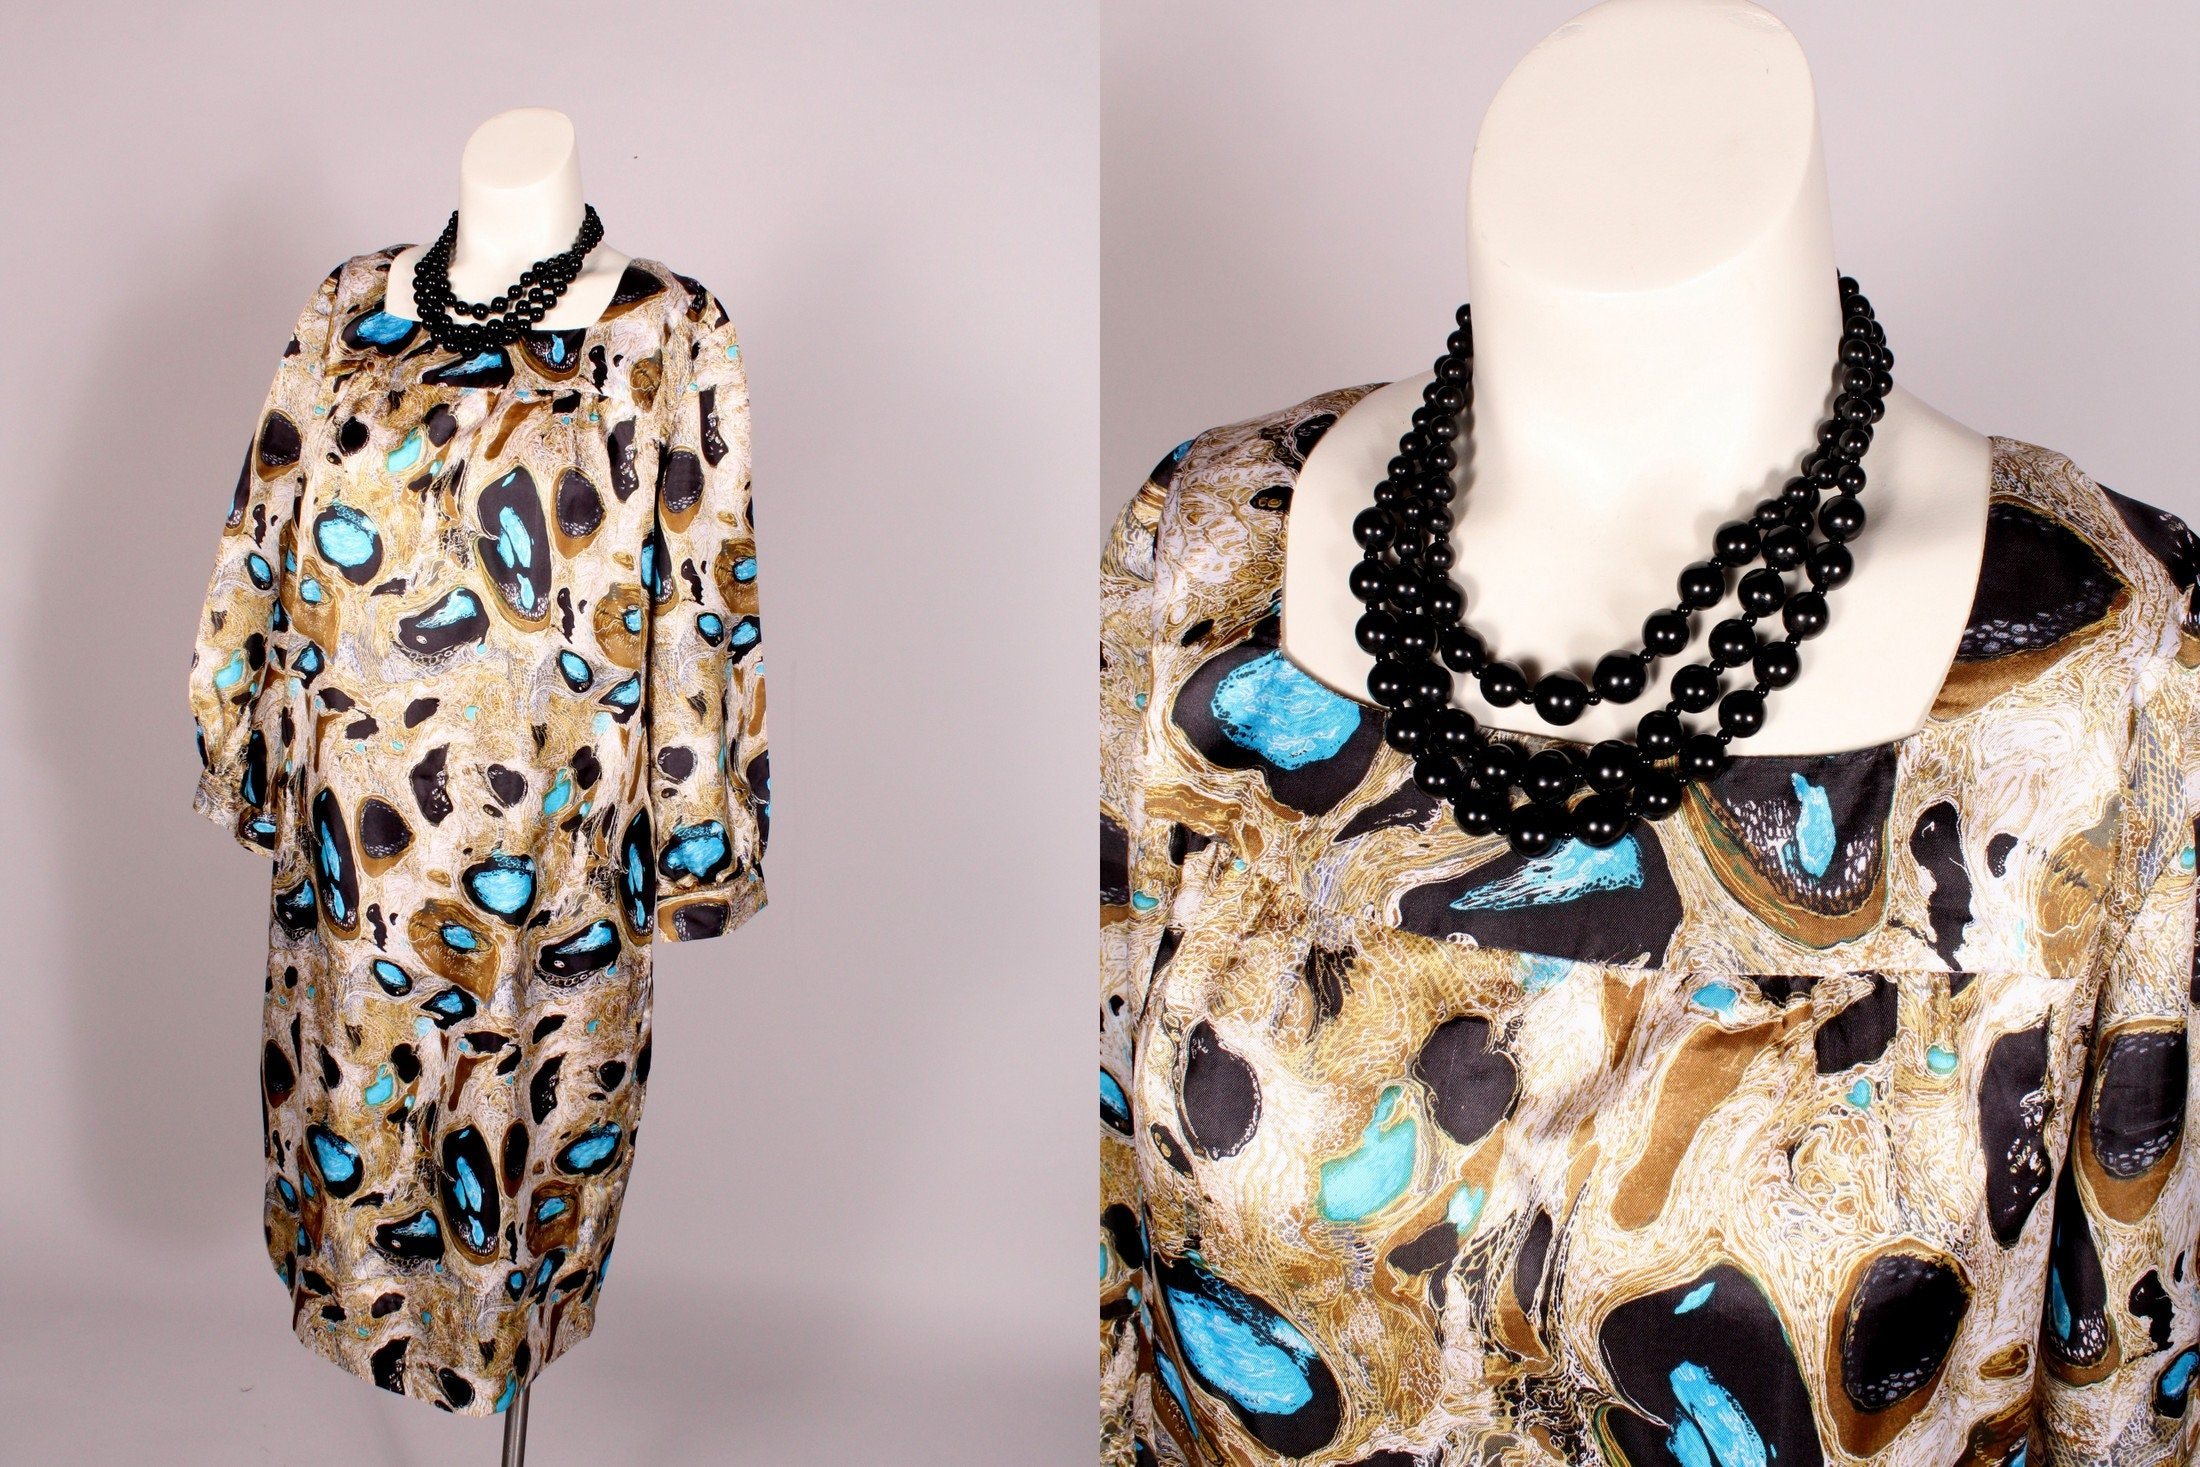 60s -70s Jewelry – Necklaces, Earrings, Rings, Bracelets 60S Dress  Vintage Olive Tan  Blue Satin Abstract Print Size M $41.00 AT vintagedancer.com